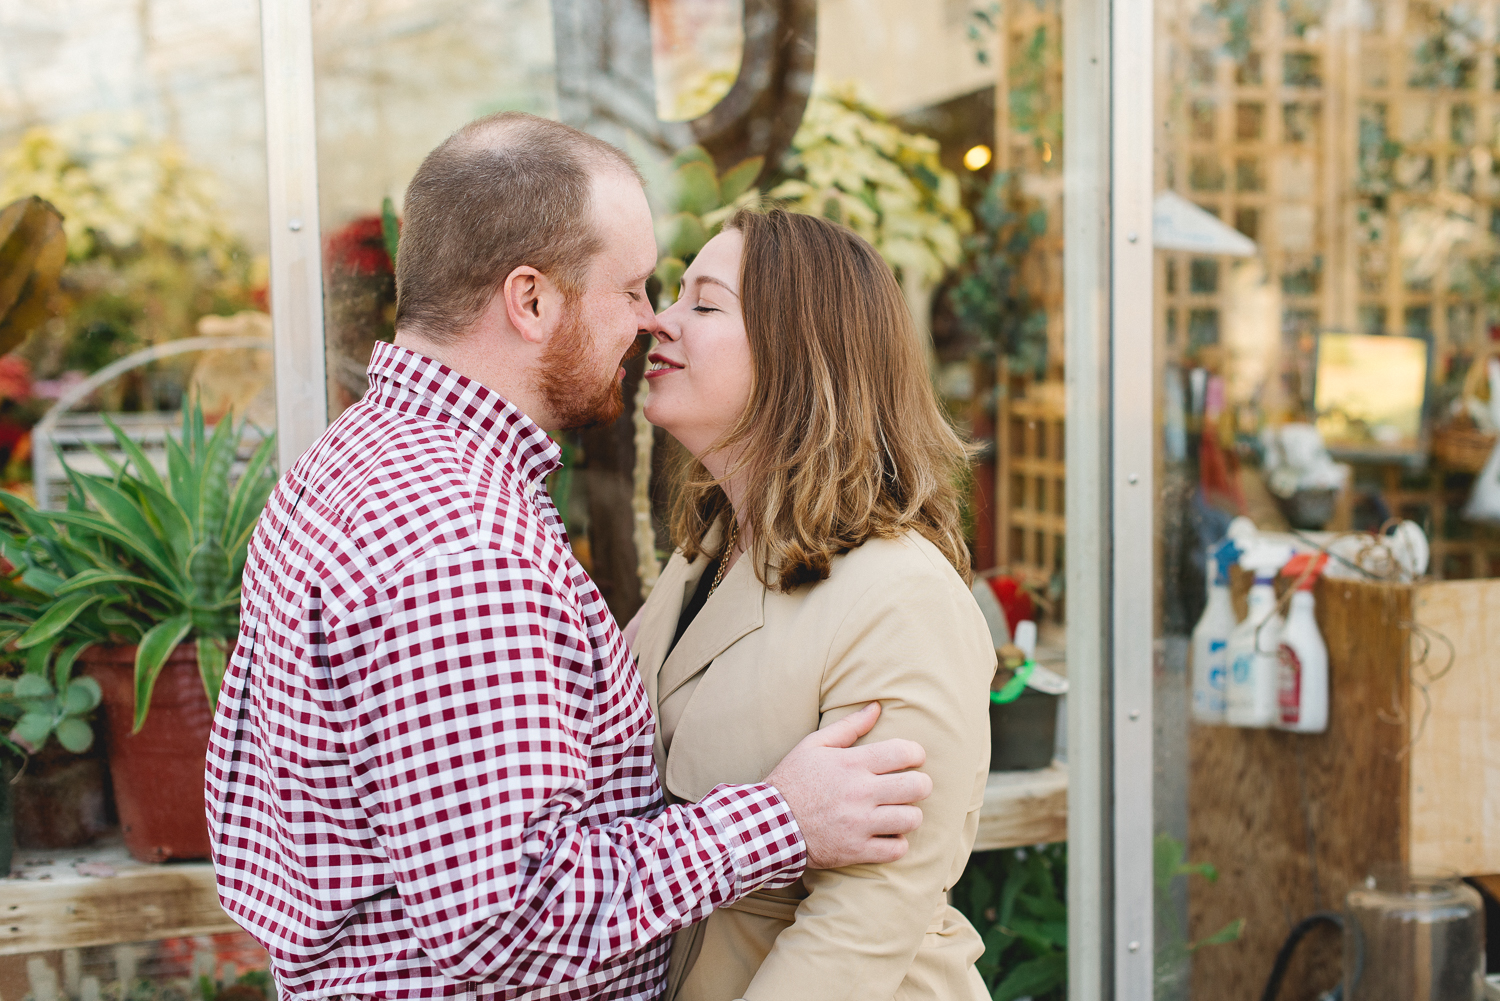 Lansdale-pennsylvania-engagement-photographer-the-rhoads-garden9.jpg